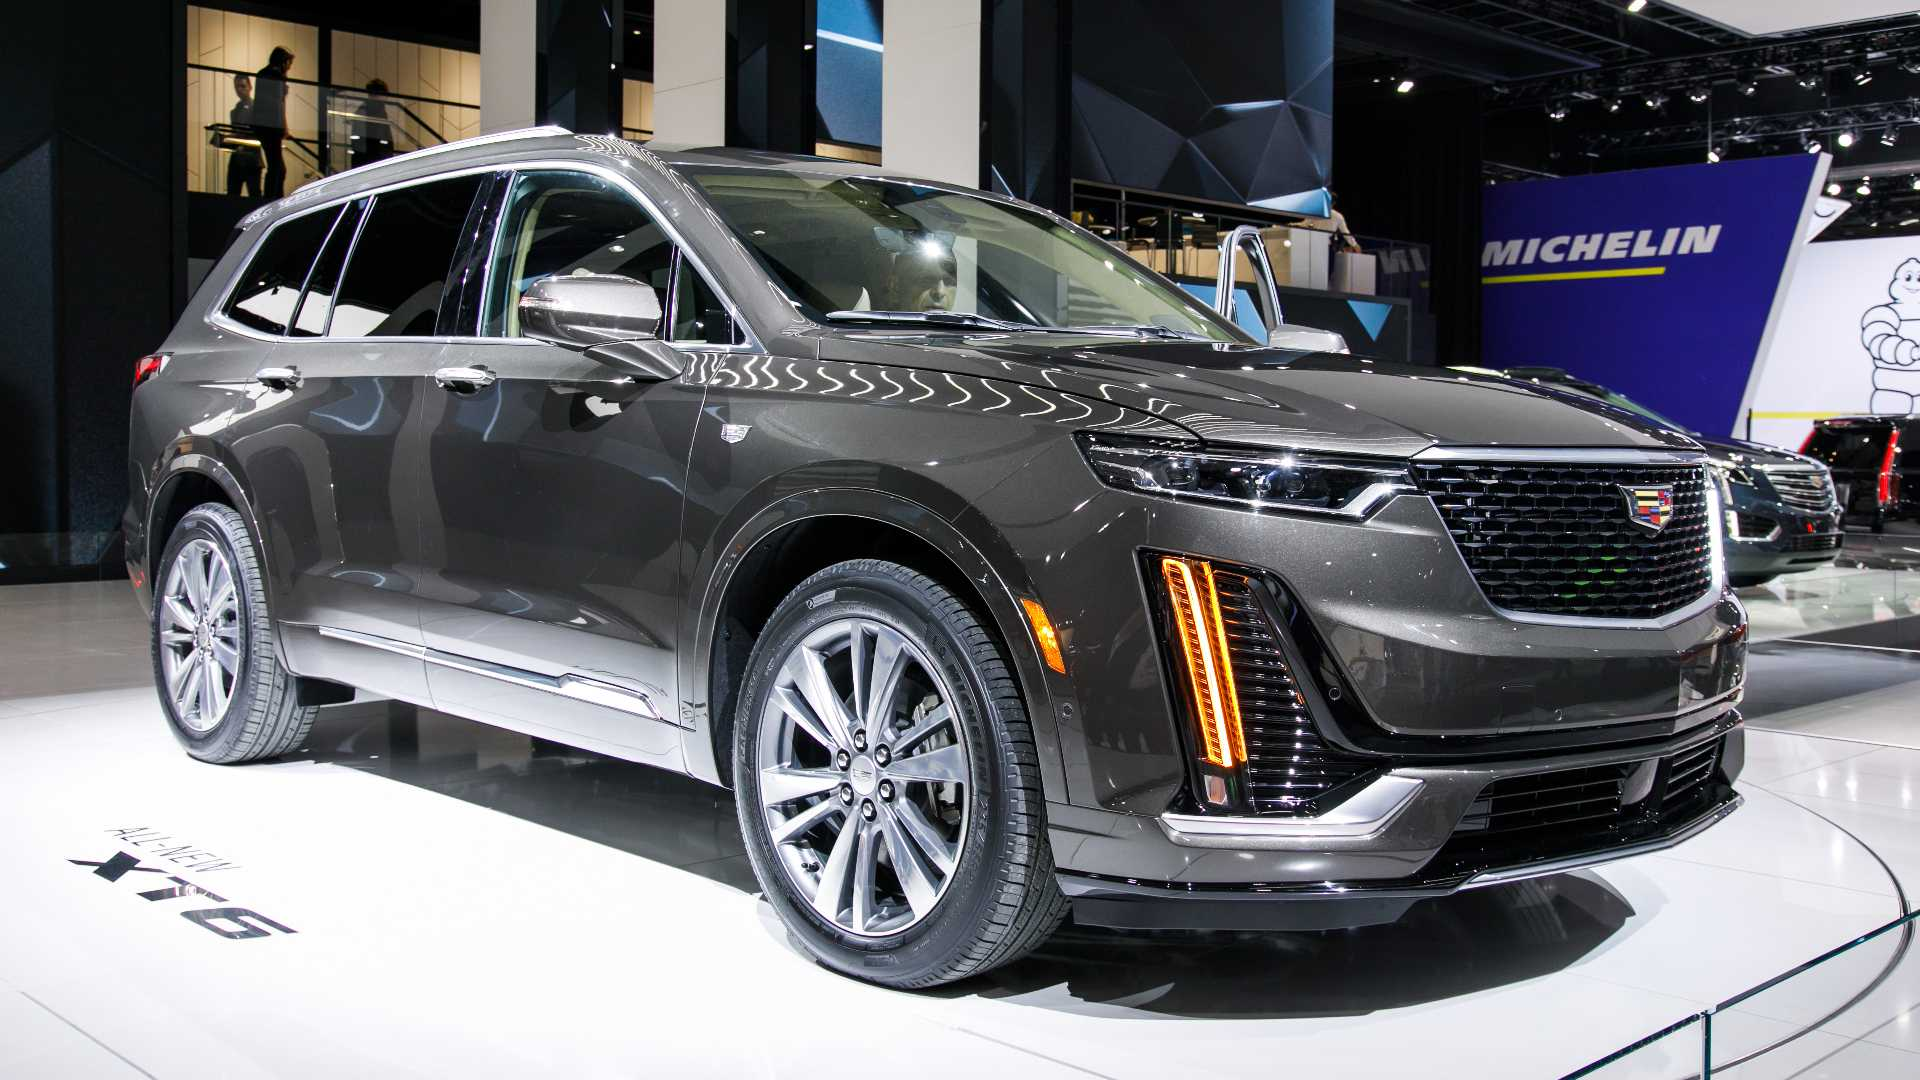 63 All New 2020 Cadillac Suv Lineup Model